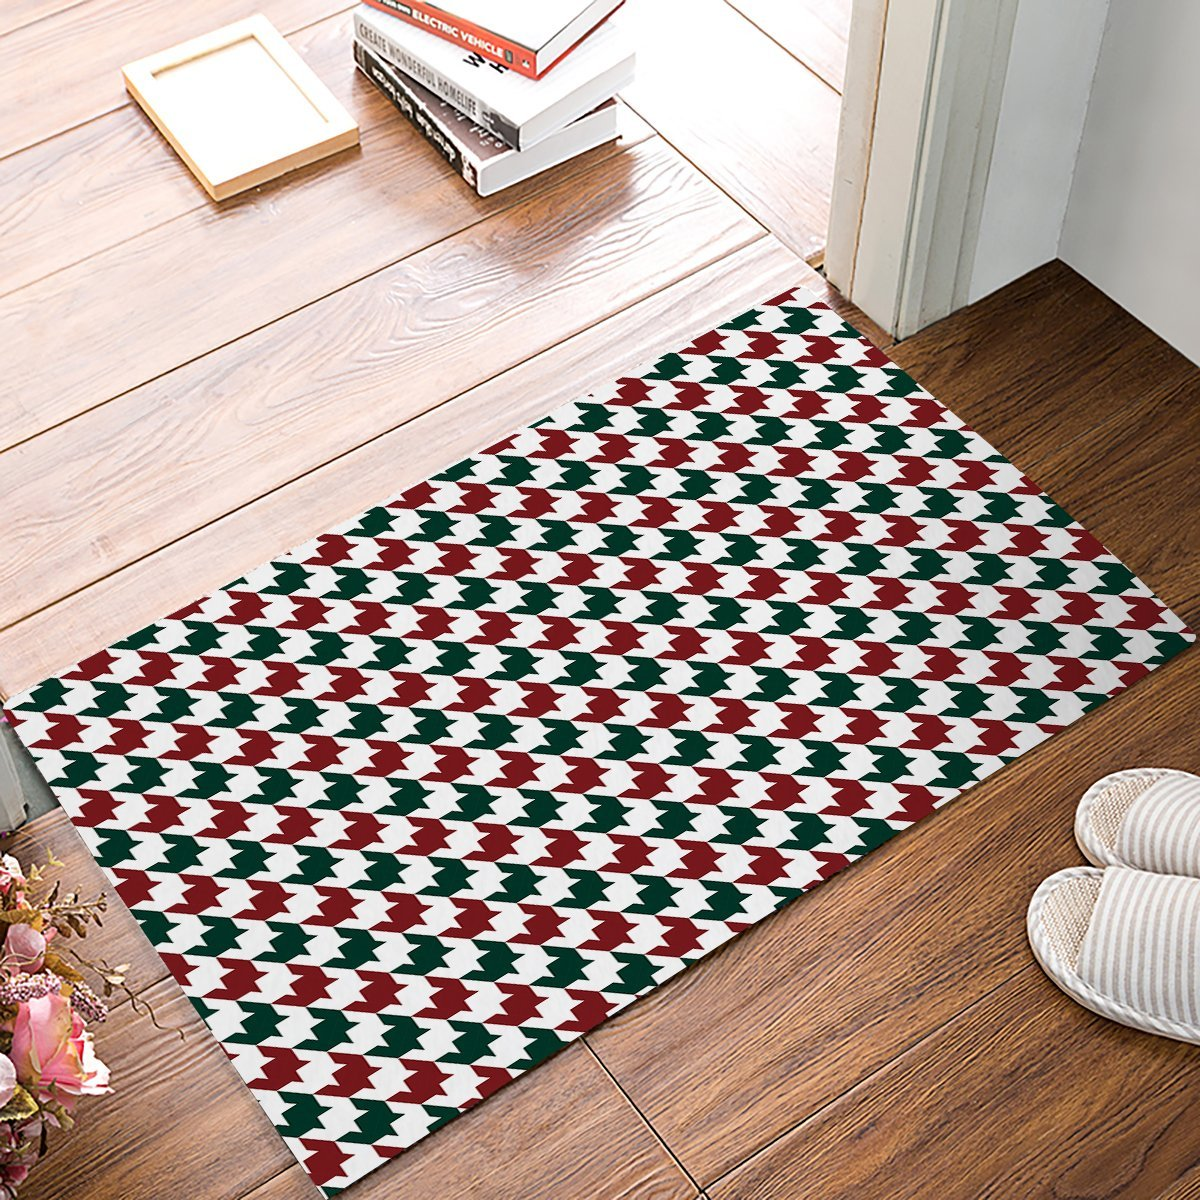 Fashion Houndstooth Red And Green Door Mats Kitchen Floor